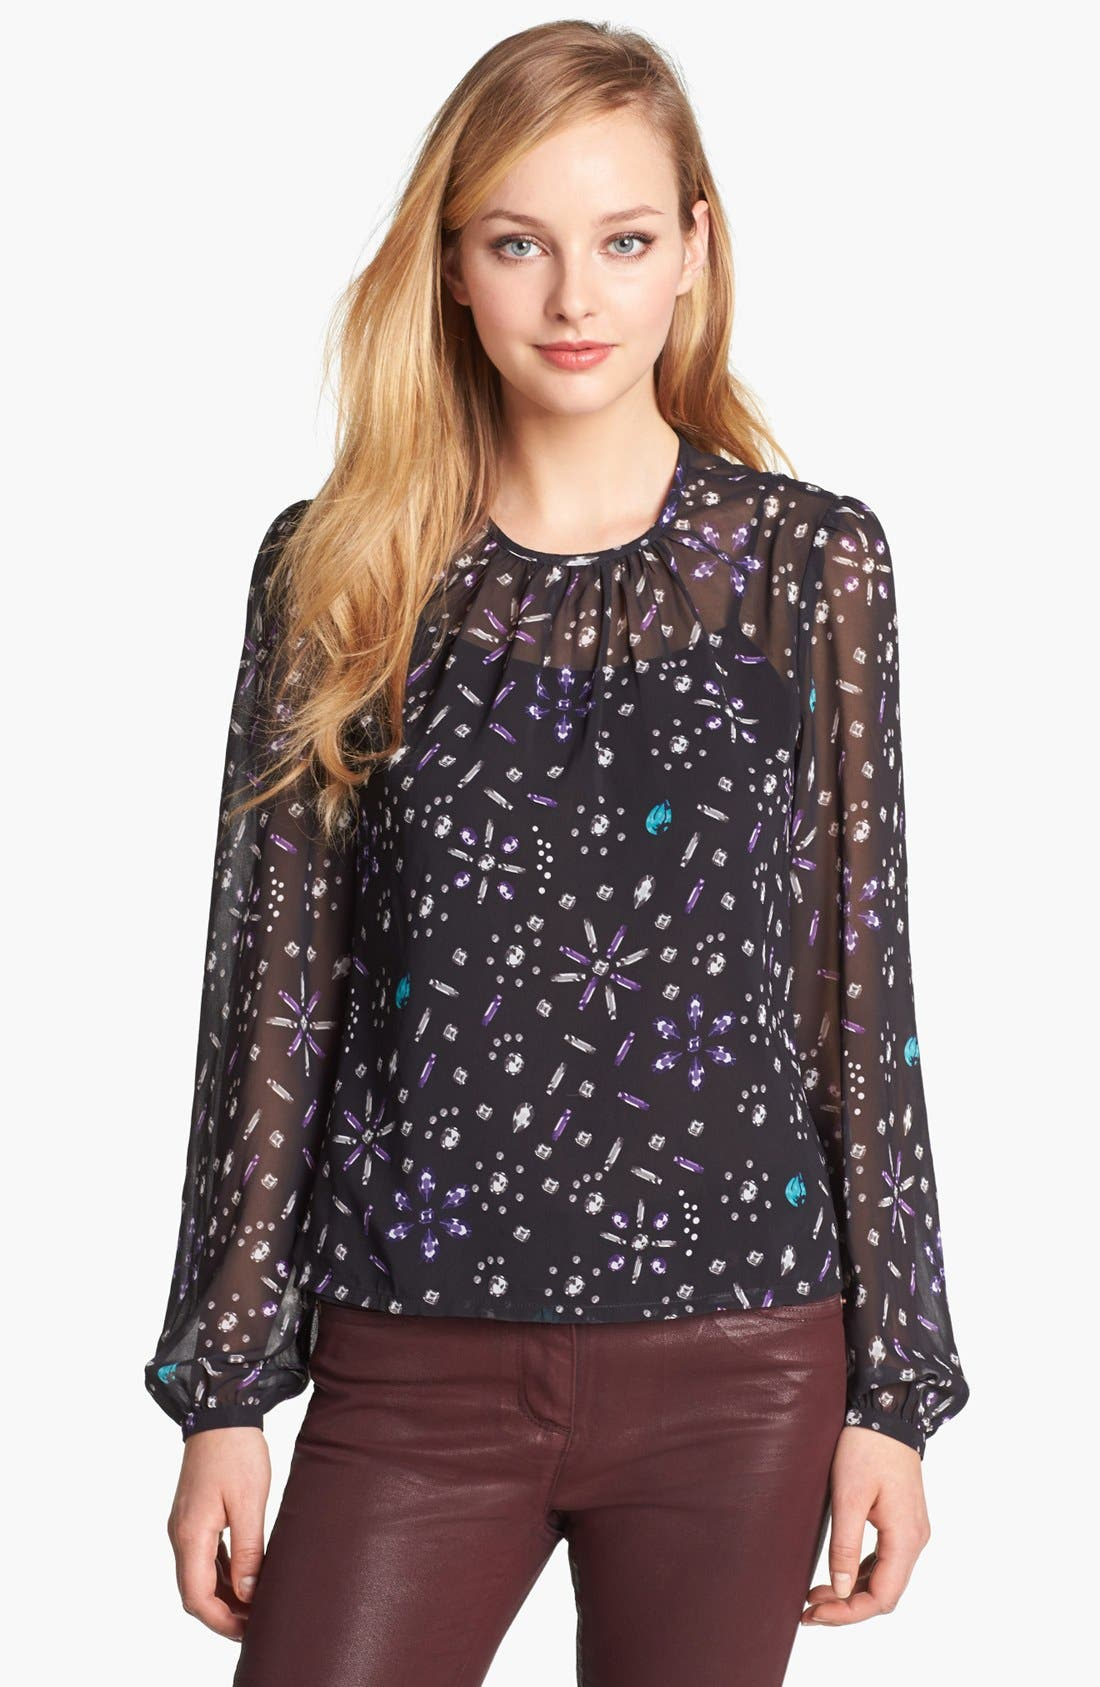 Alternate Image 1 Selected - Vince Camuto Jewel Print Blouse